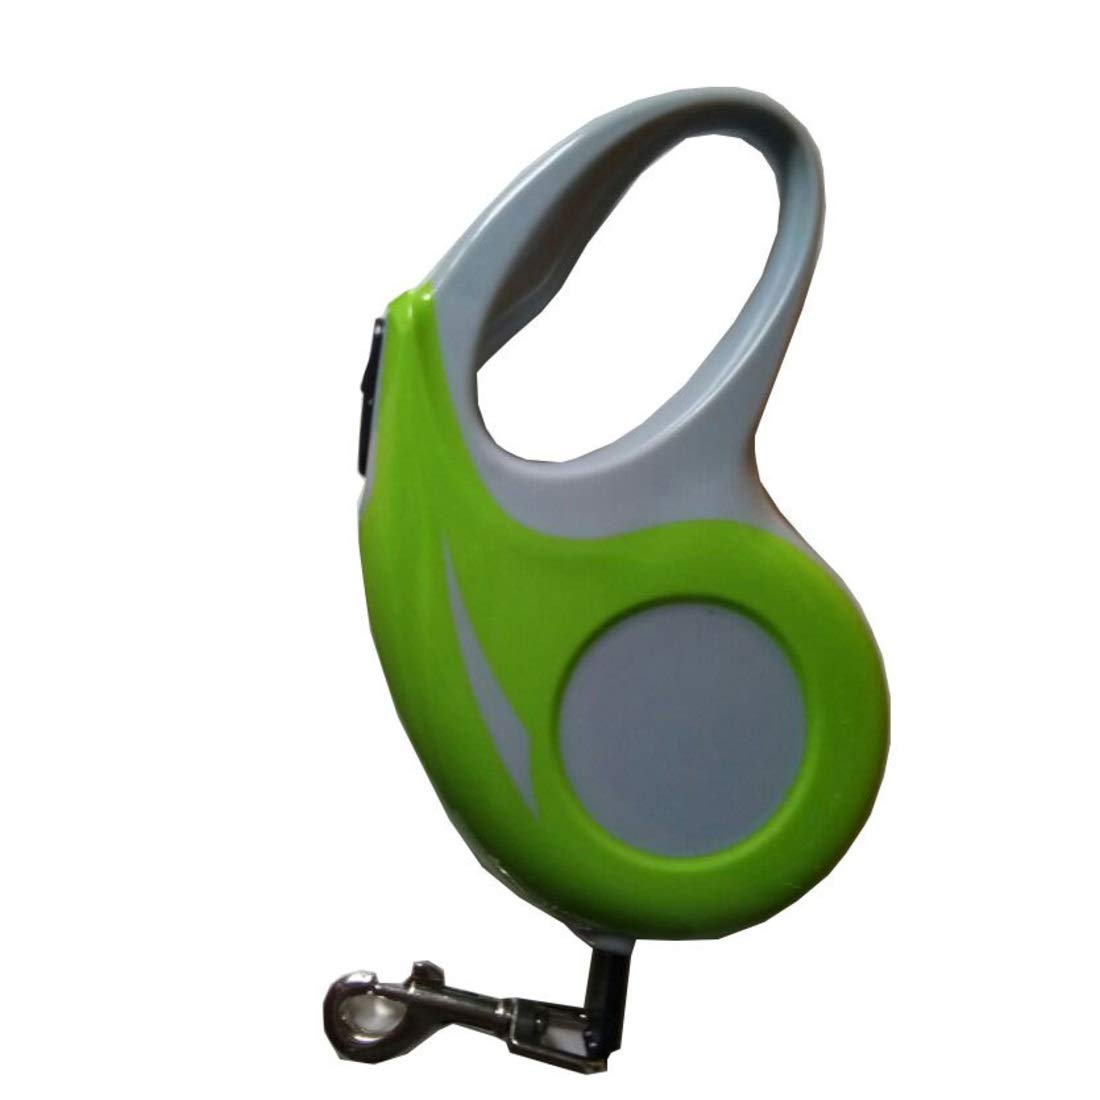 GREEN Small GREEN Small Souliyan 360° Tangle-Free, Heavy Duty Retractable Dog Leash with Anti-Slip Handle Strong Nylon Tape (color   Green, Size   S)